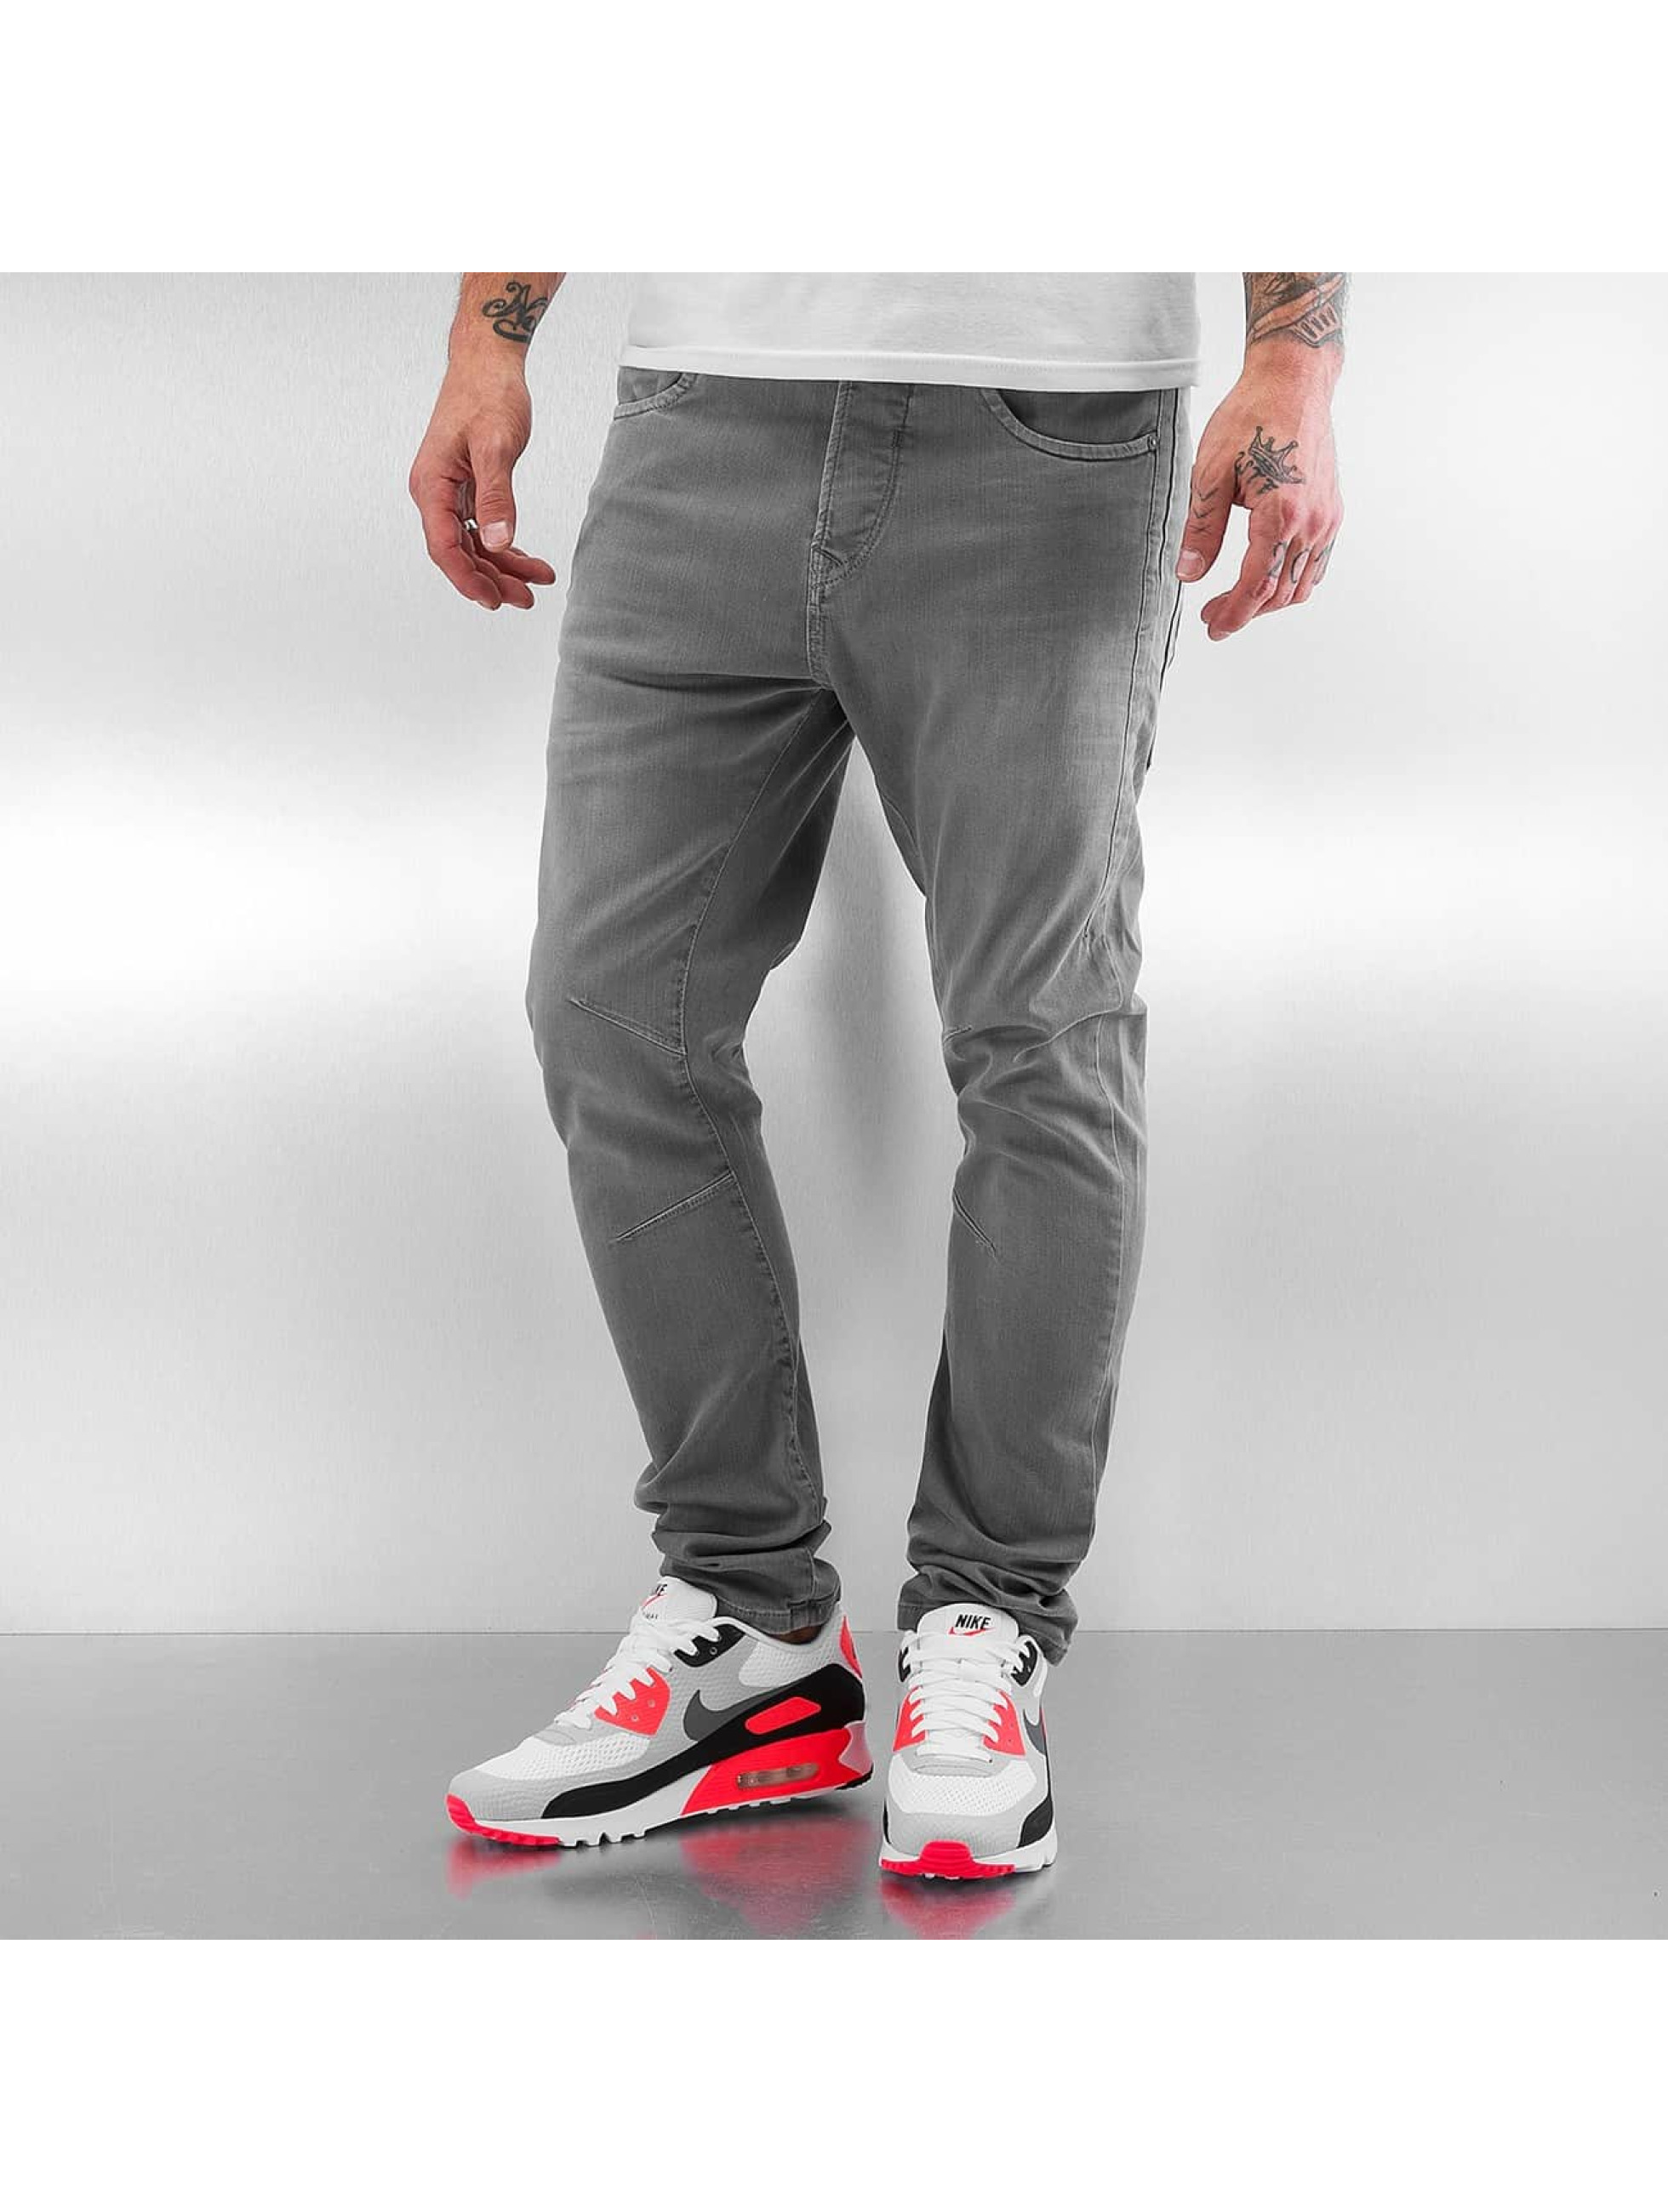 Jack & Jones Antifit jjIluke jjEcho JOS 999 grey